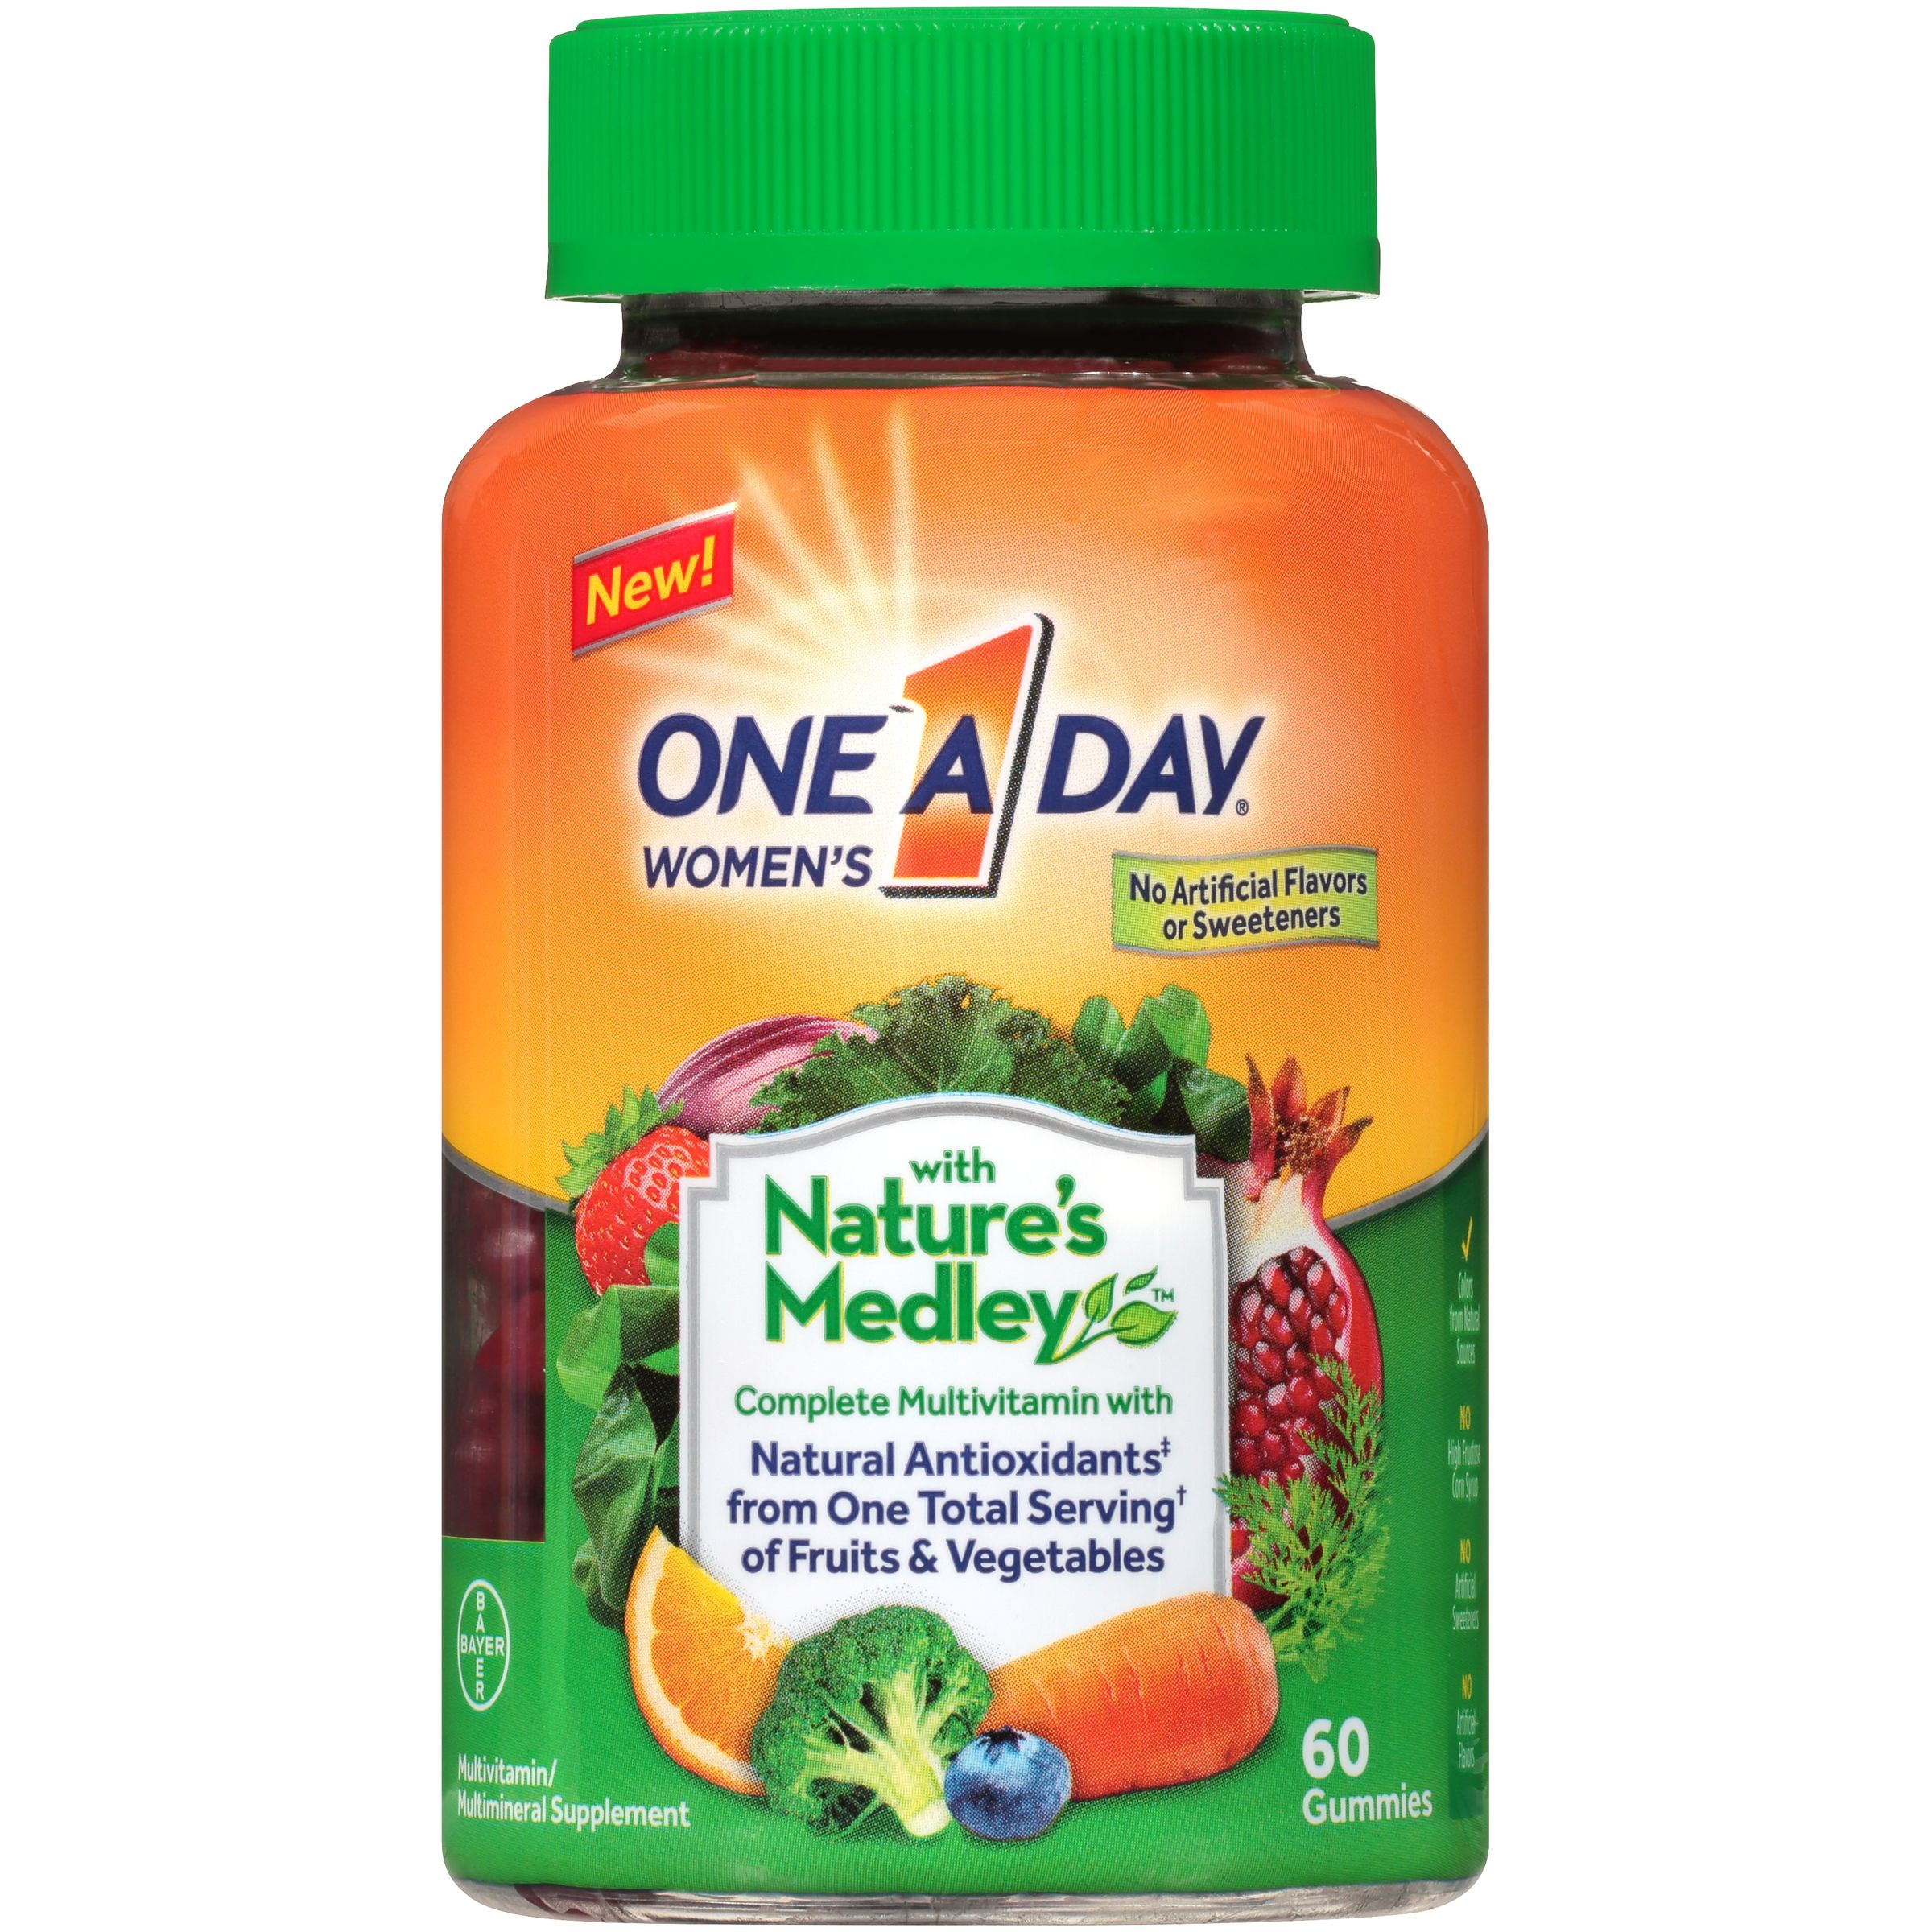 One A Day Women's with Nature's Medley Multivitamin Gummies, 60 Count